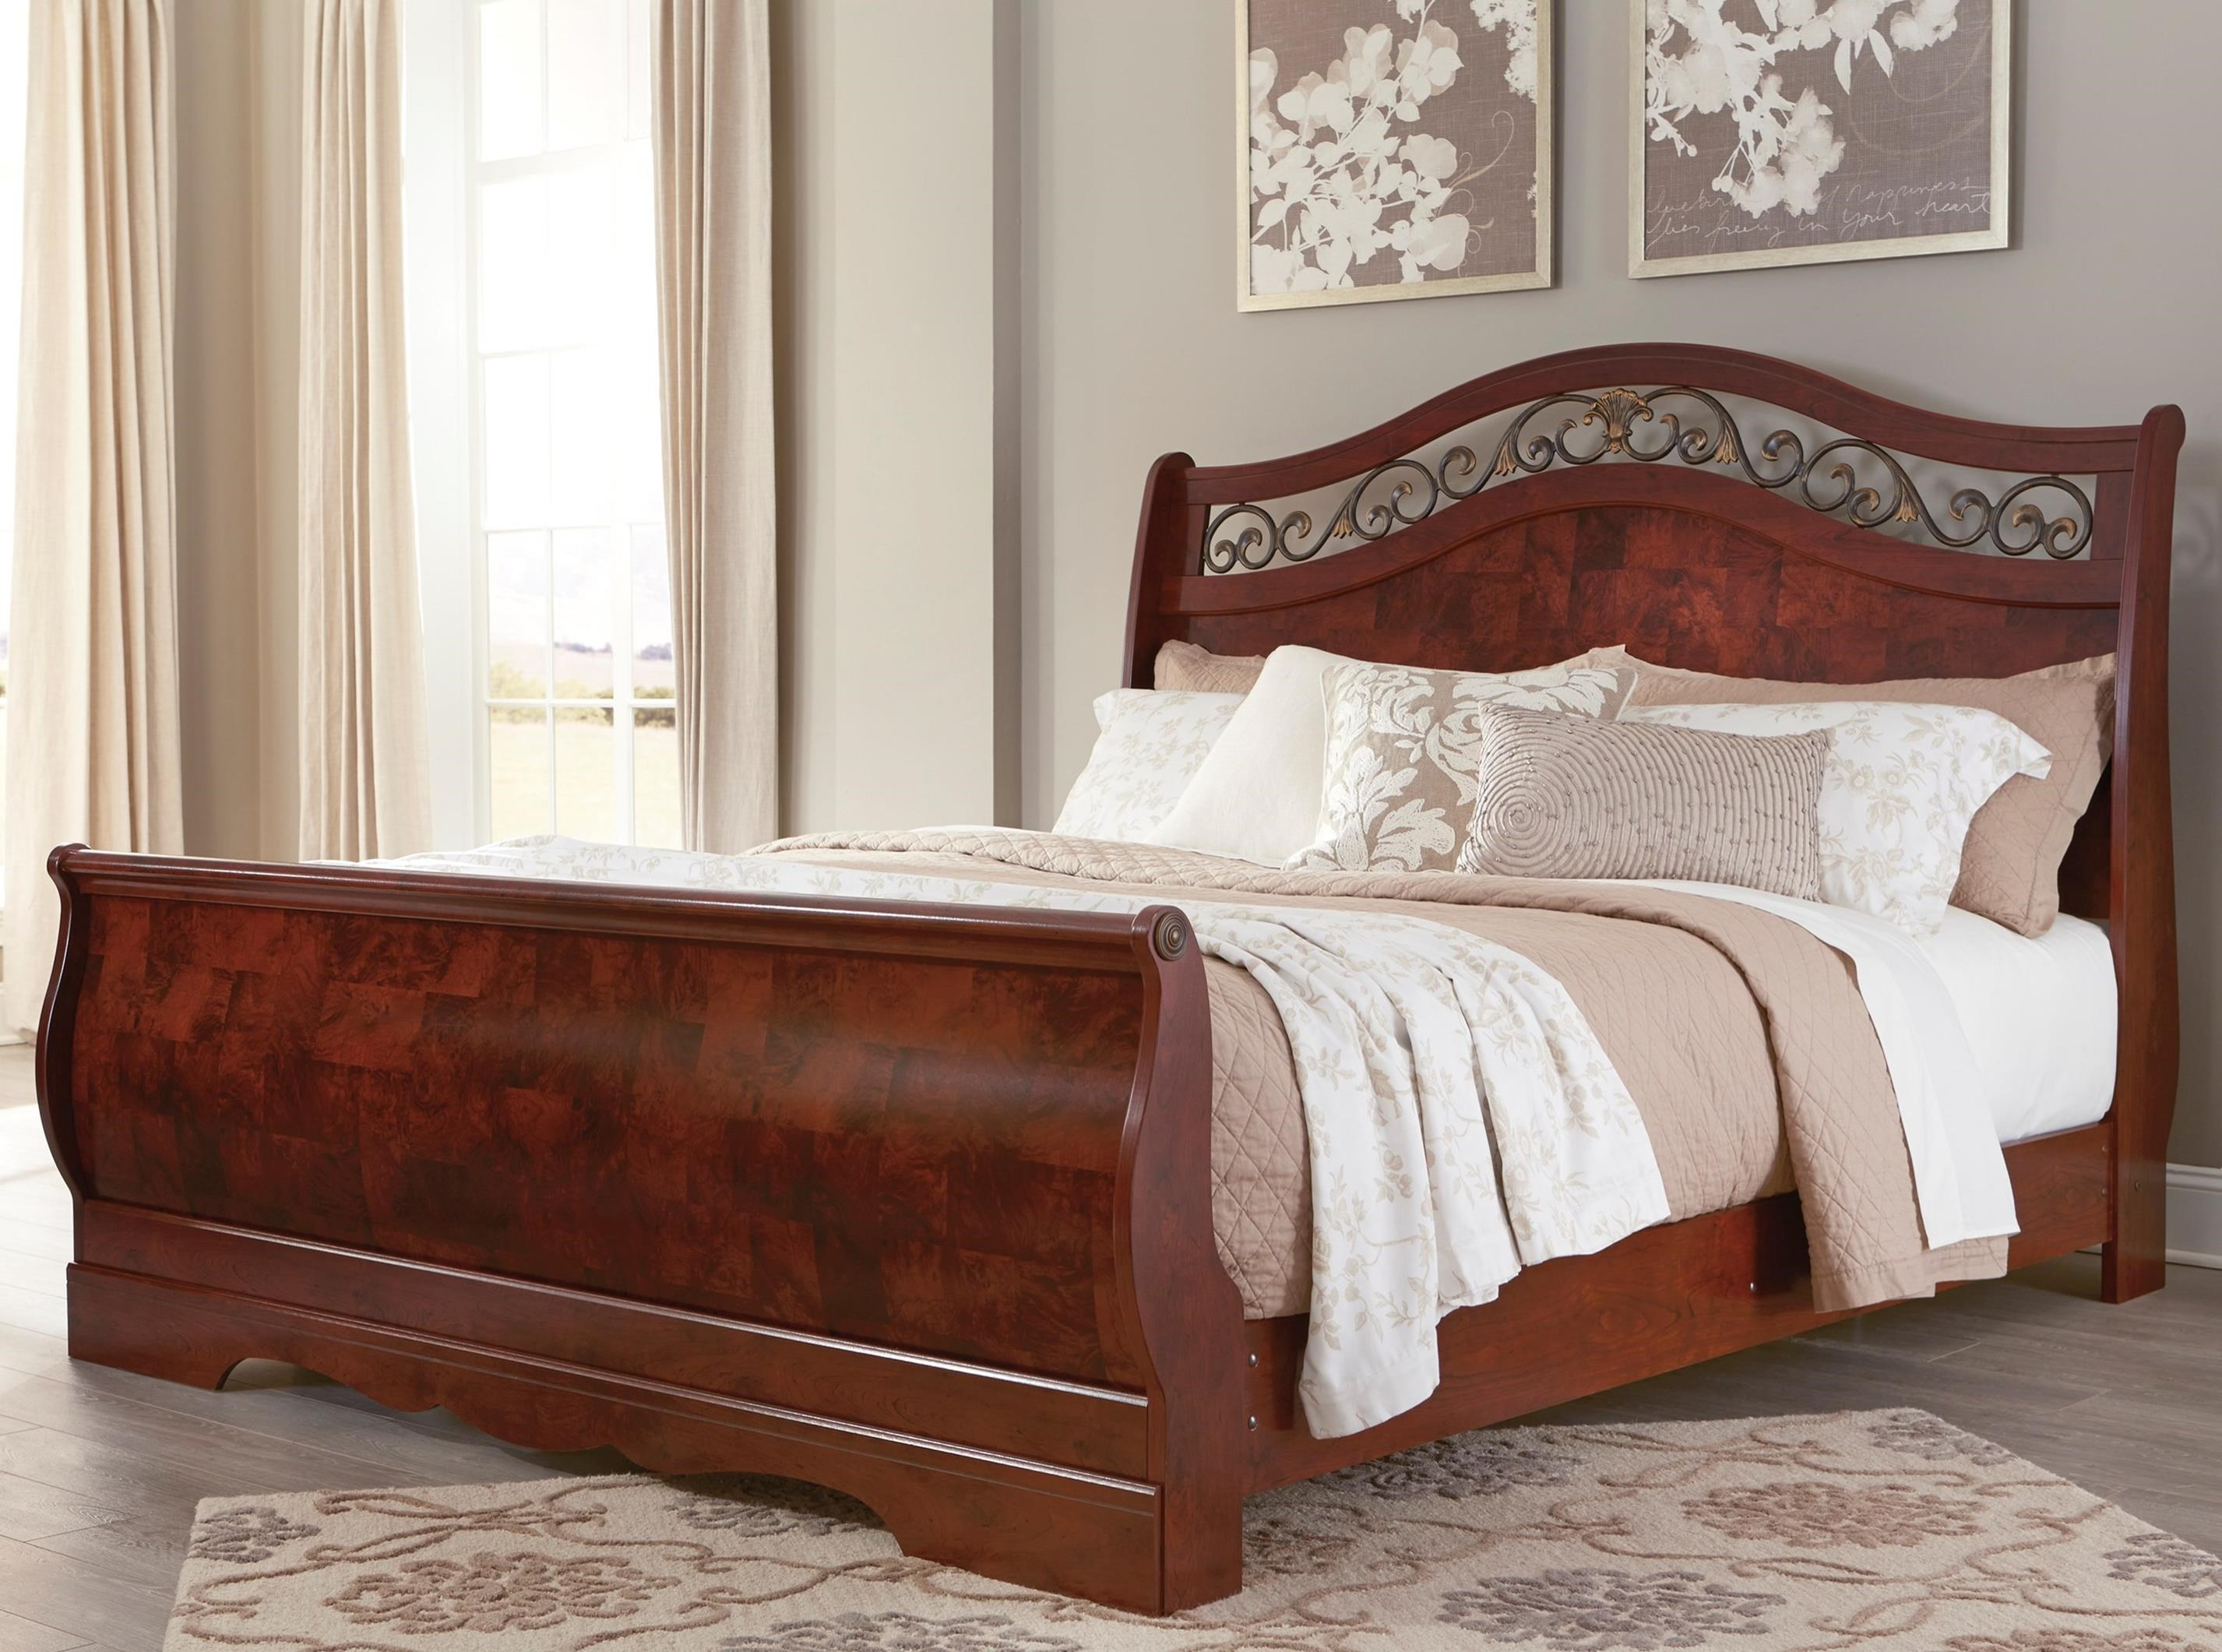 Signature Design by Ashley Delianna King Sleigh Bed - Item Number: B223-78+76+97